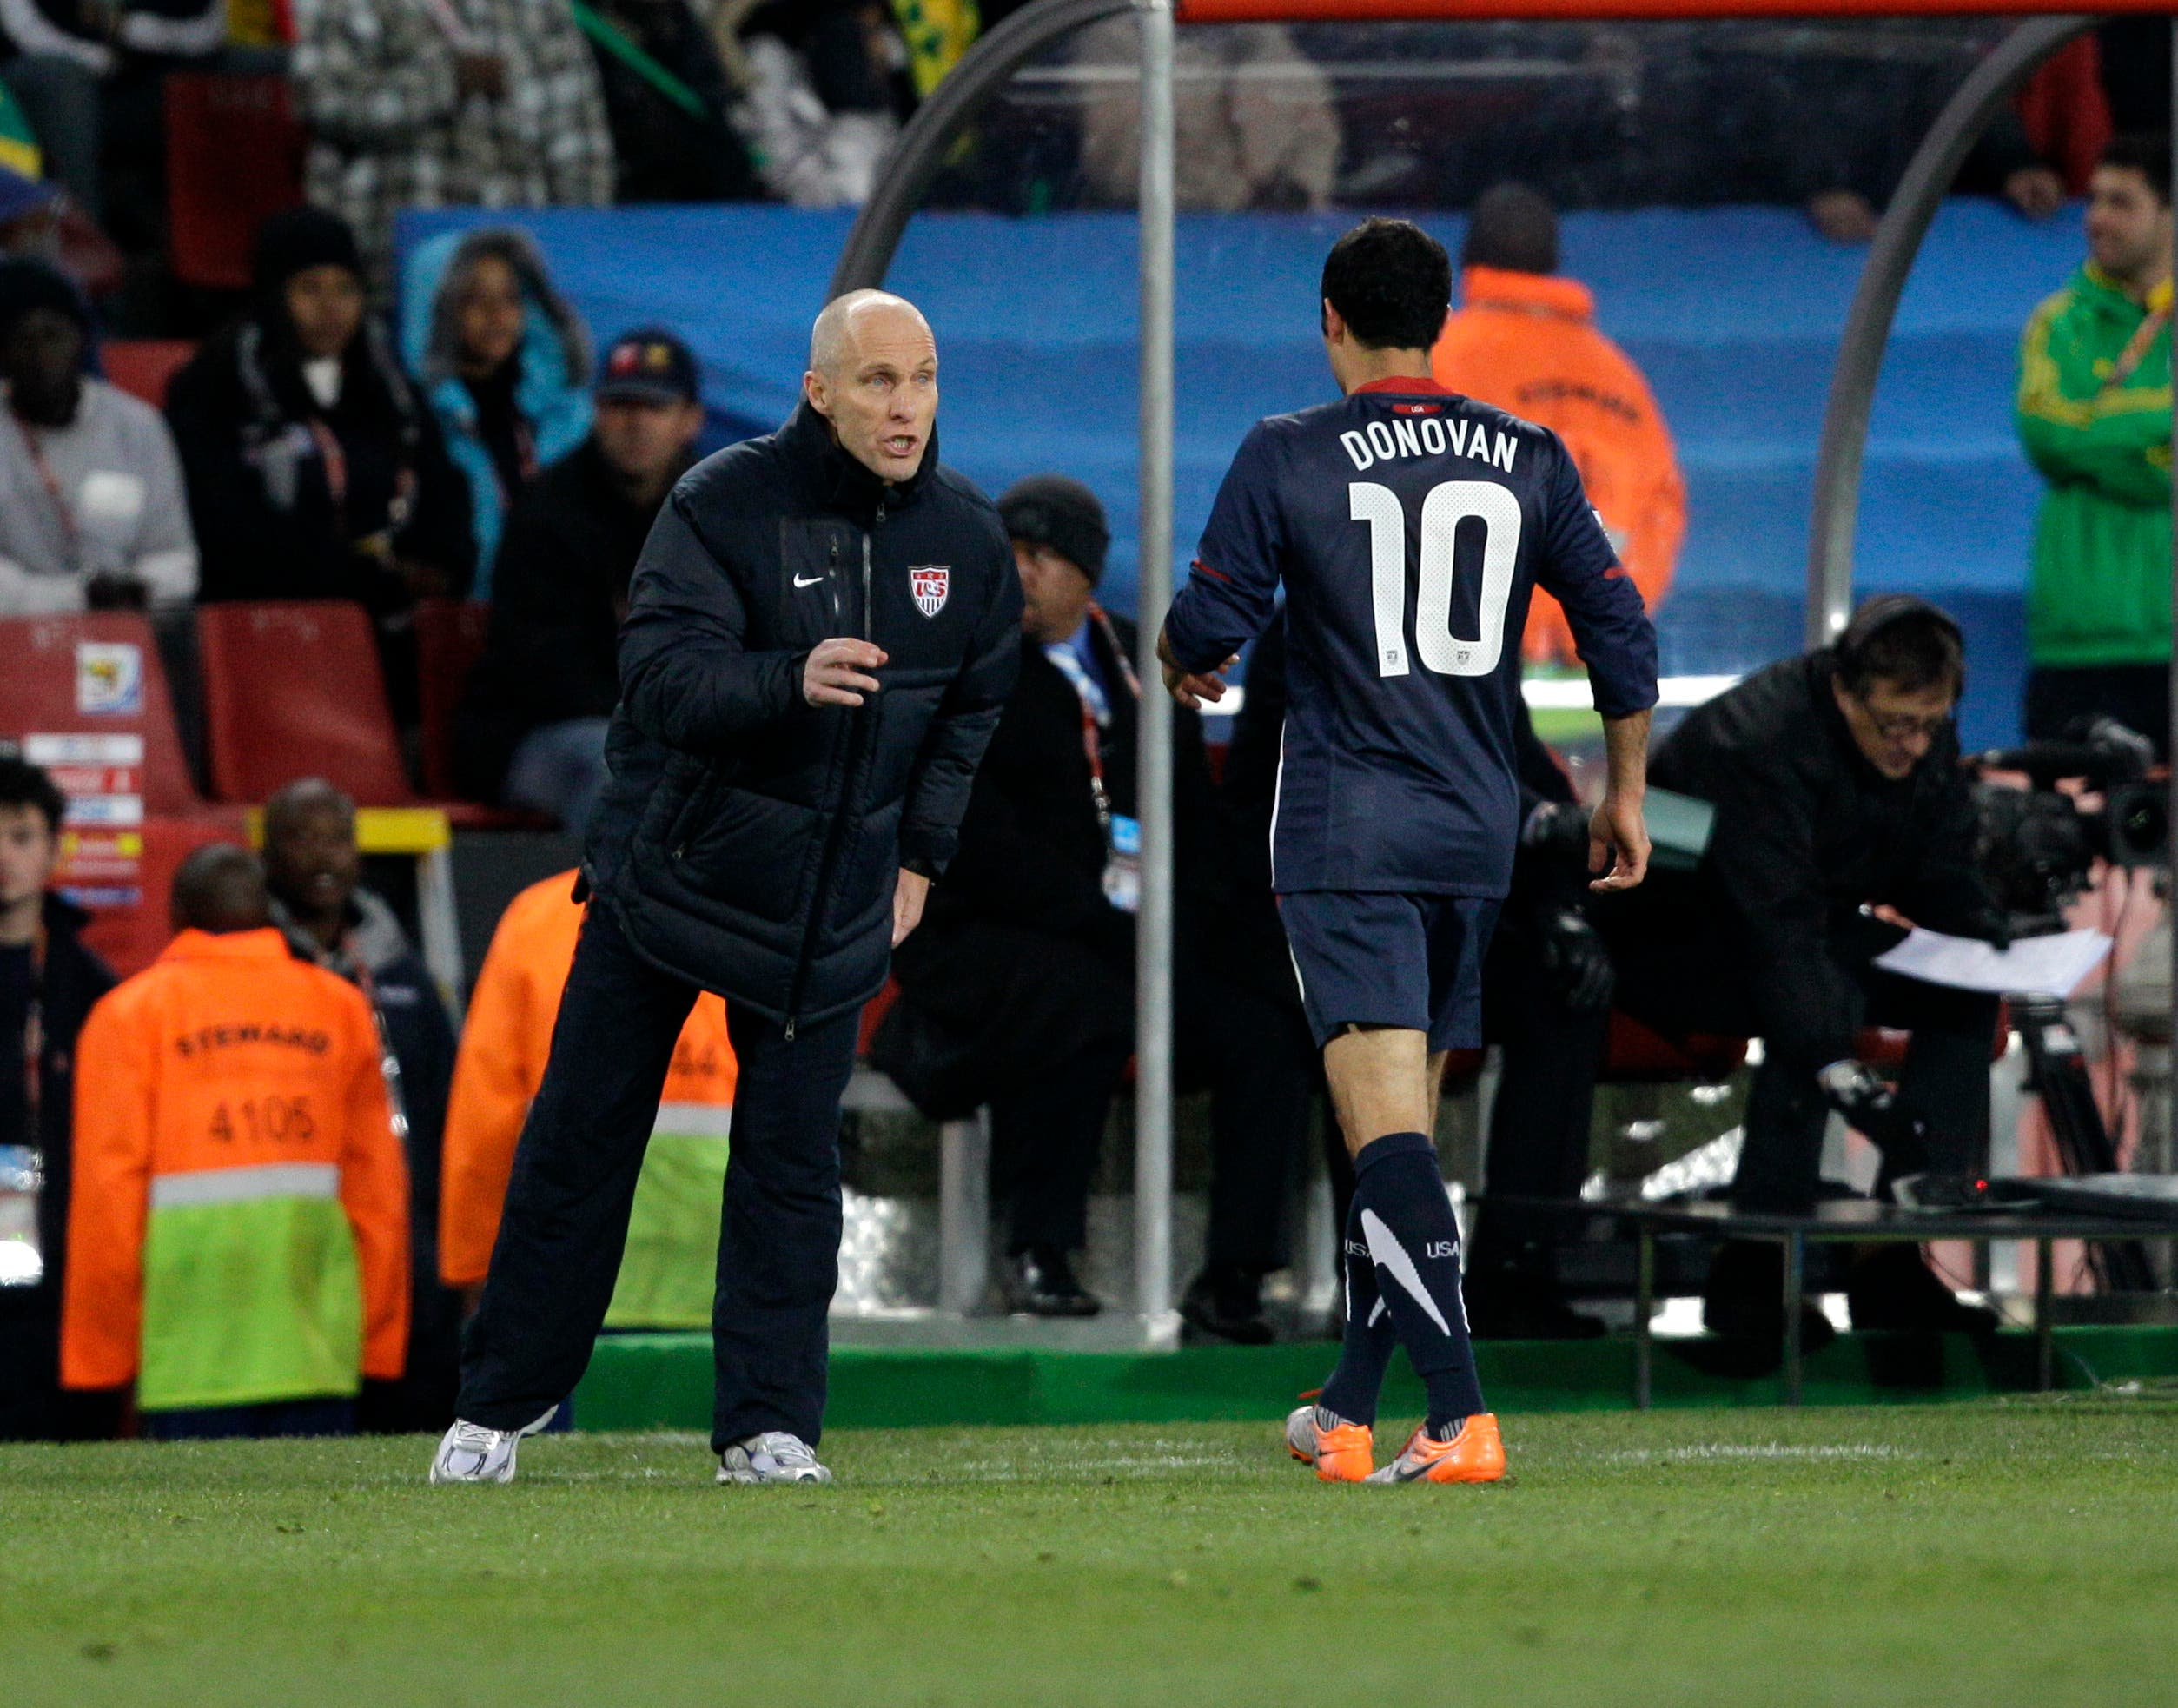 United States head coach Bob Bradley, left, speaks to United States' Landon Donovan during the World Cup group C soccer match between Slovenia and the United States at Ellis Park Stadium in Johannesburg, South Africa. (AP)